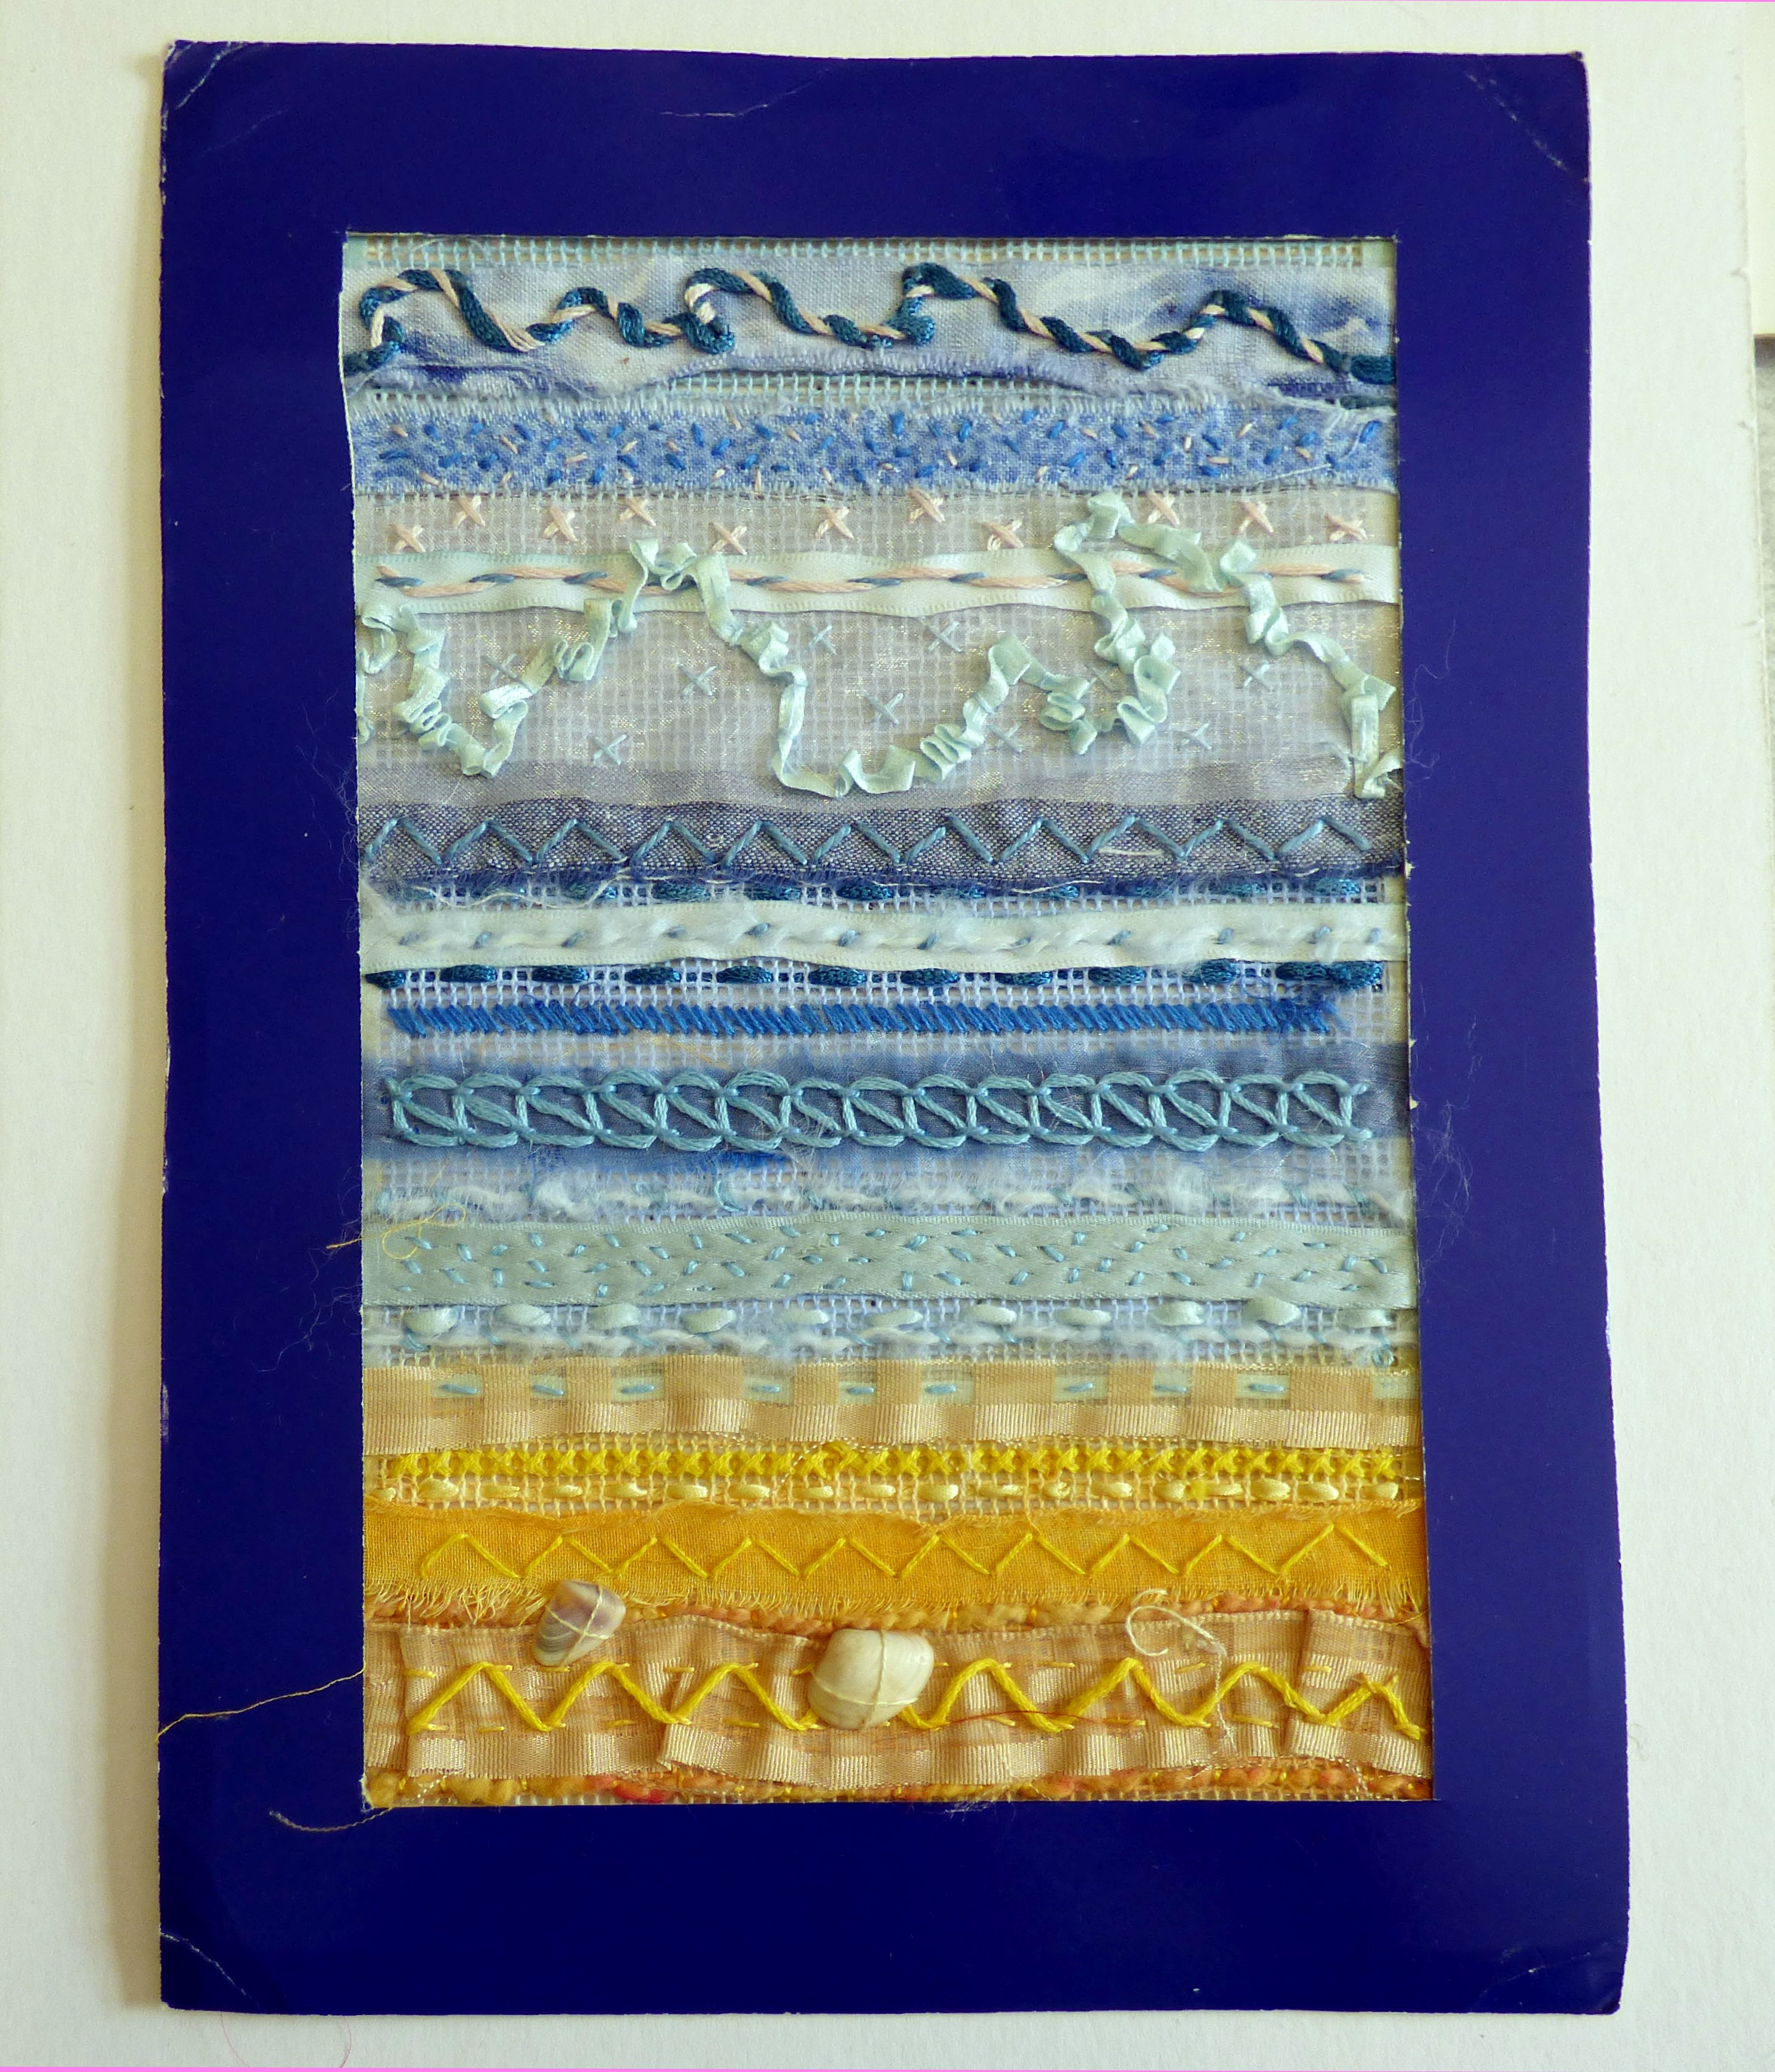 ribbon embroidery by children of Kettleshulme C of E School, Derbyshire